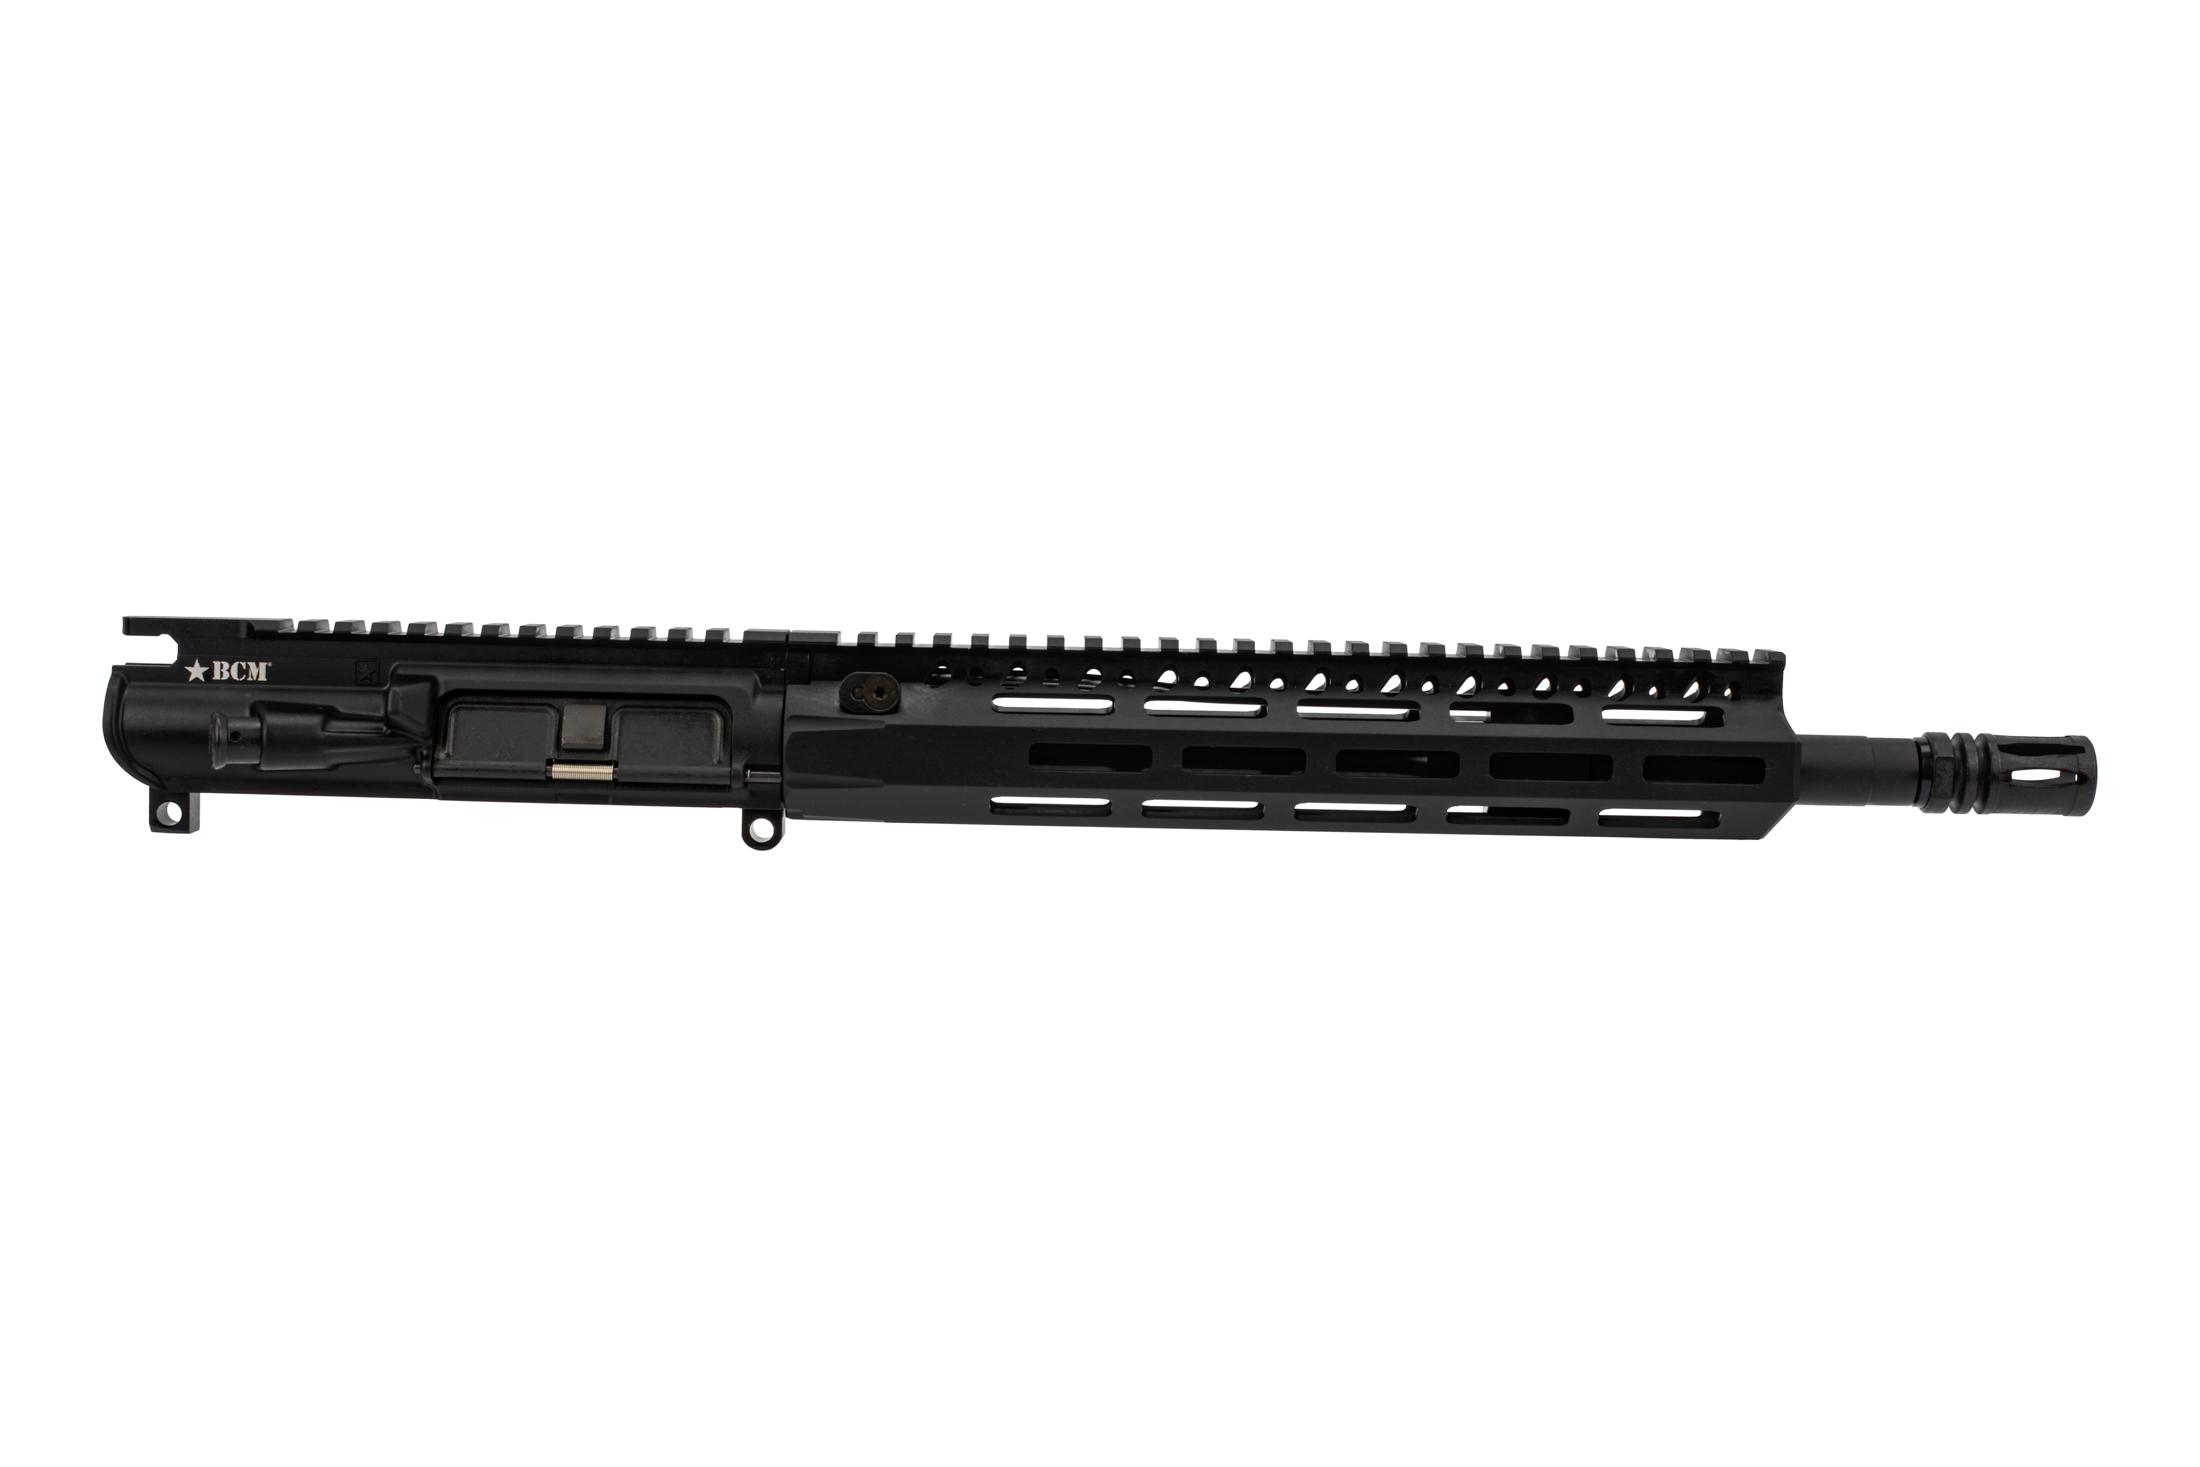 Bravo Company USA MK2 Carbine barreled Upper Receiver with MCMR handguard features M-LOK slots